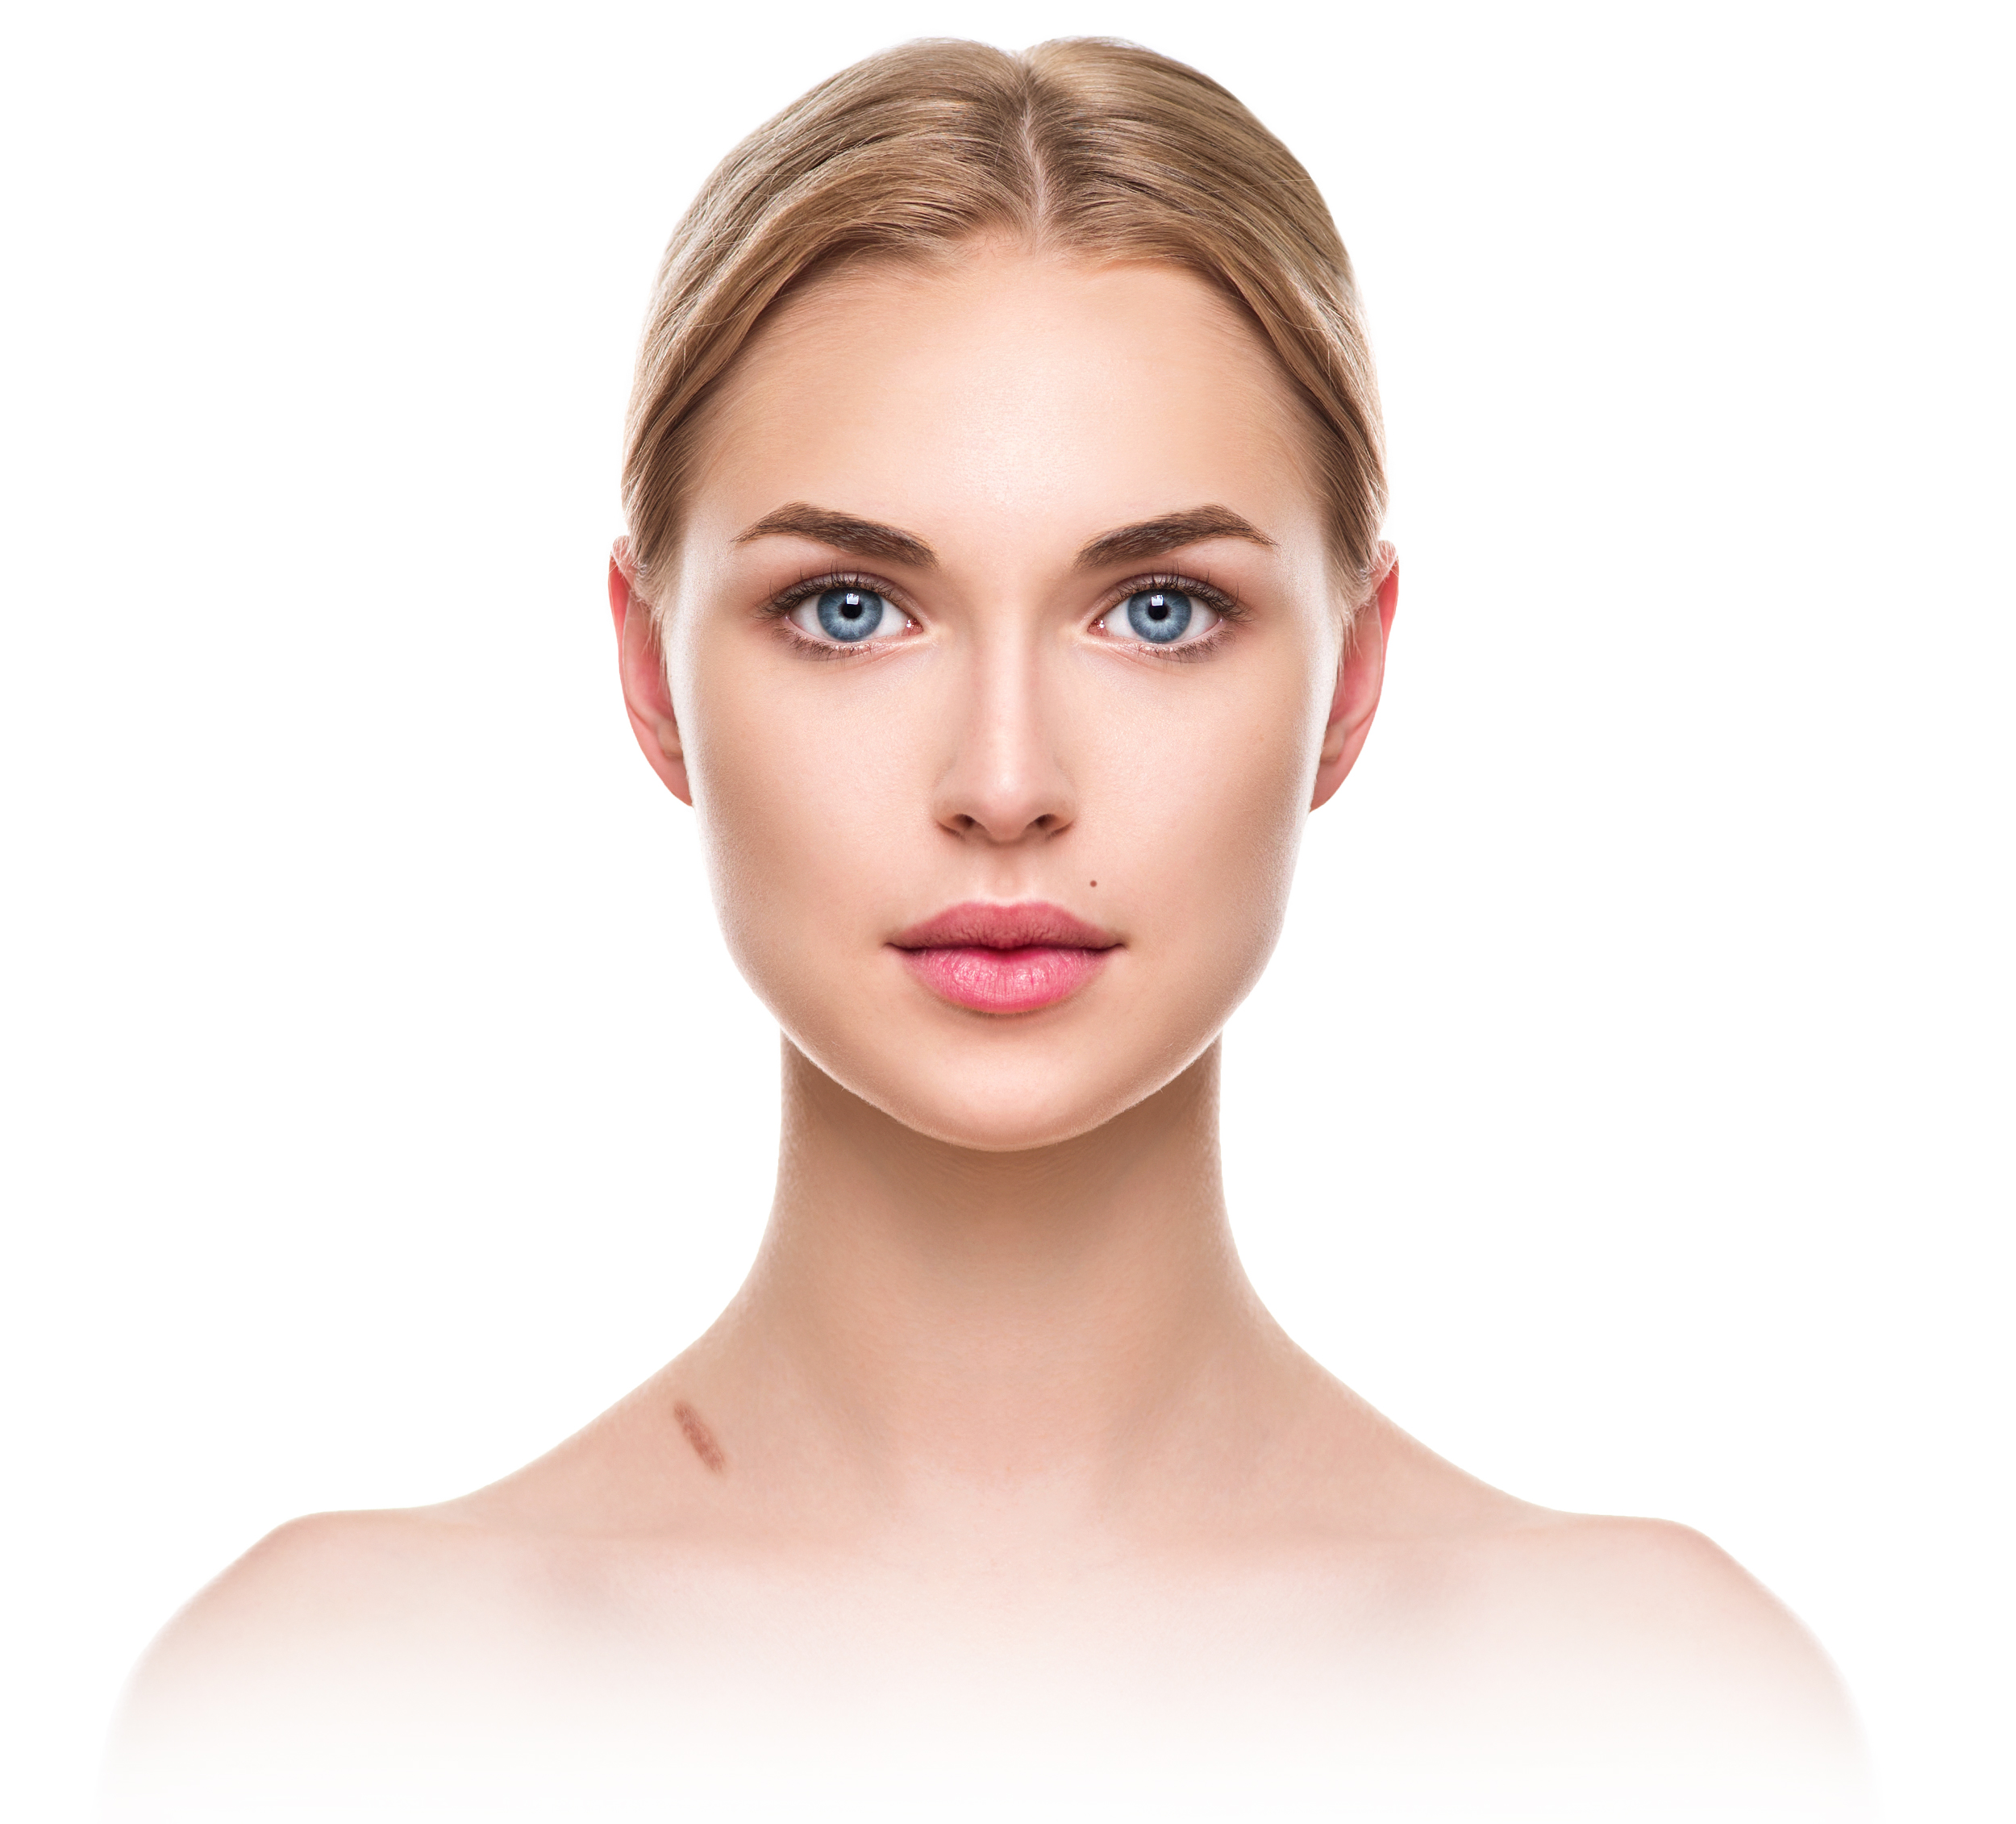 Facial Cosmetic Surgery Rockledge and Melbourne Florida